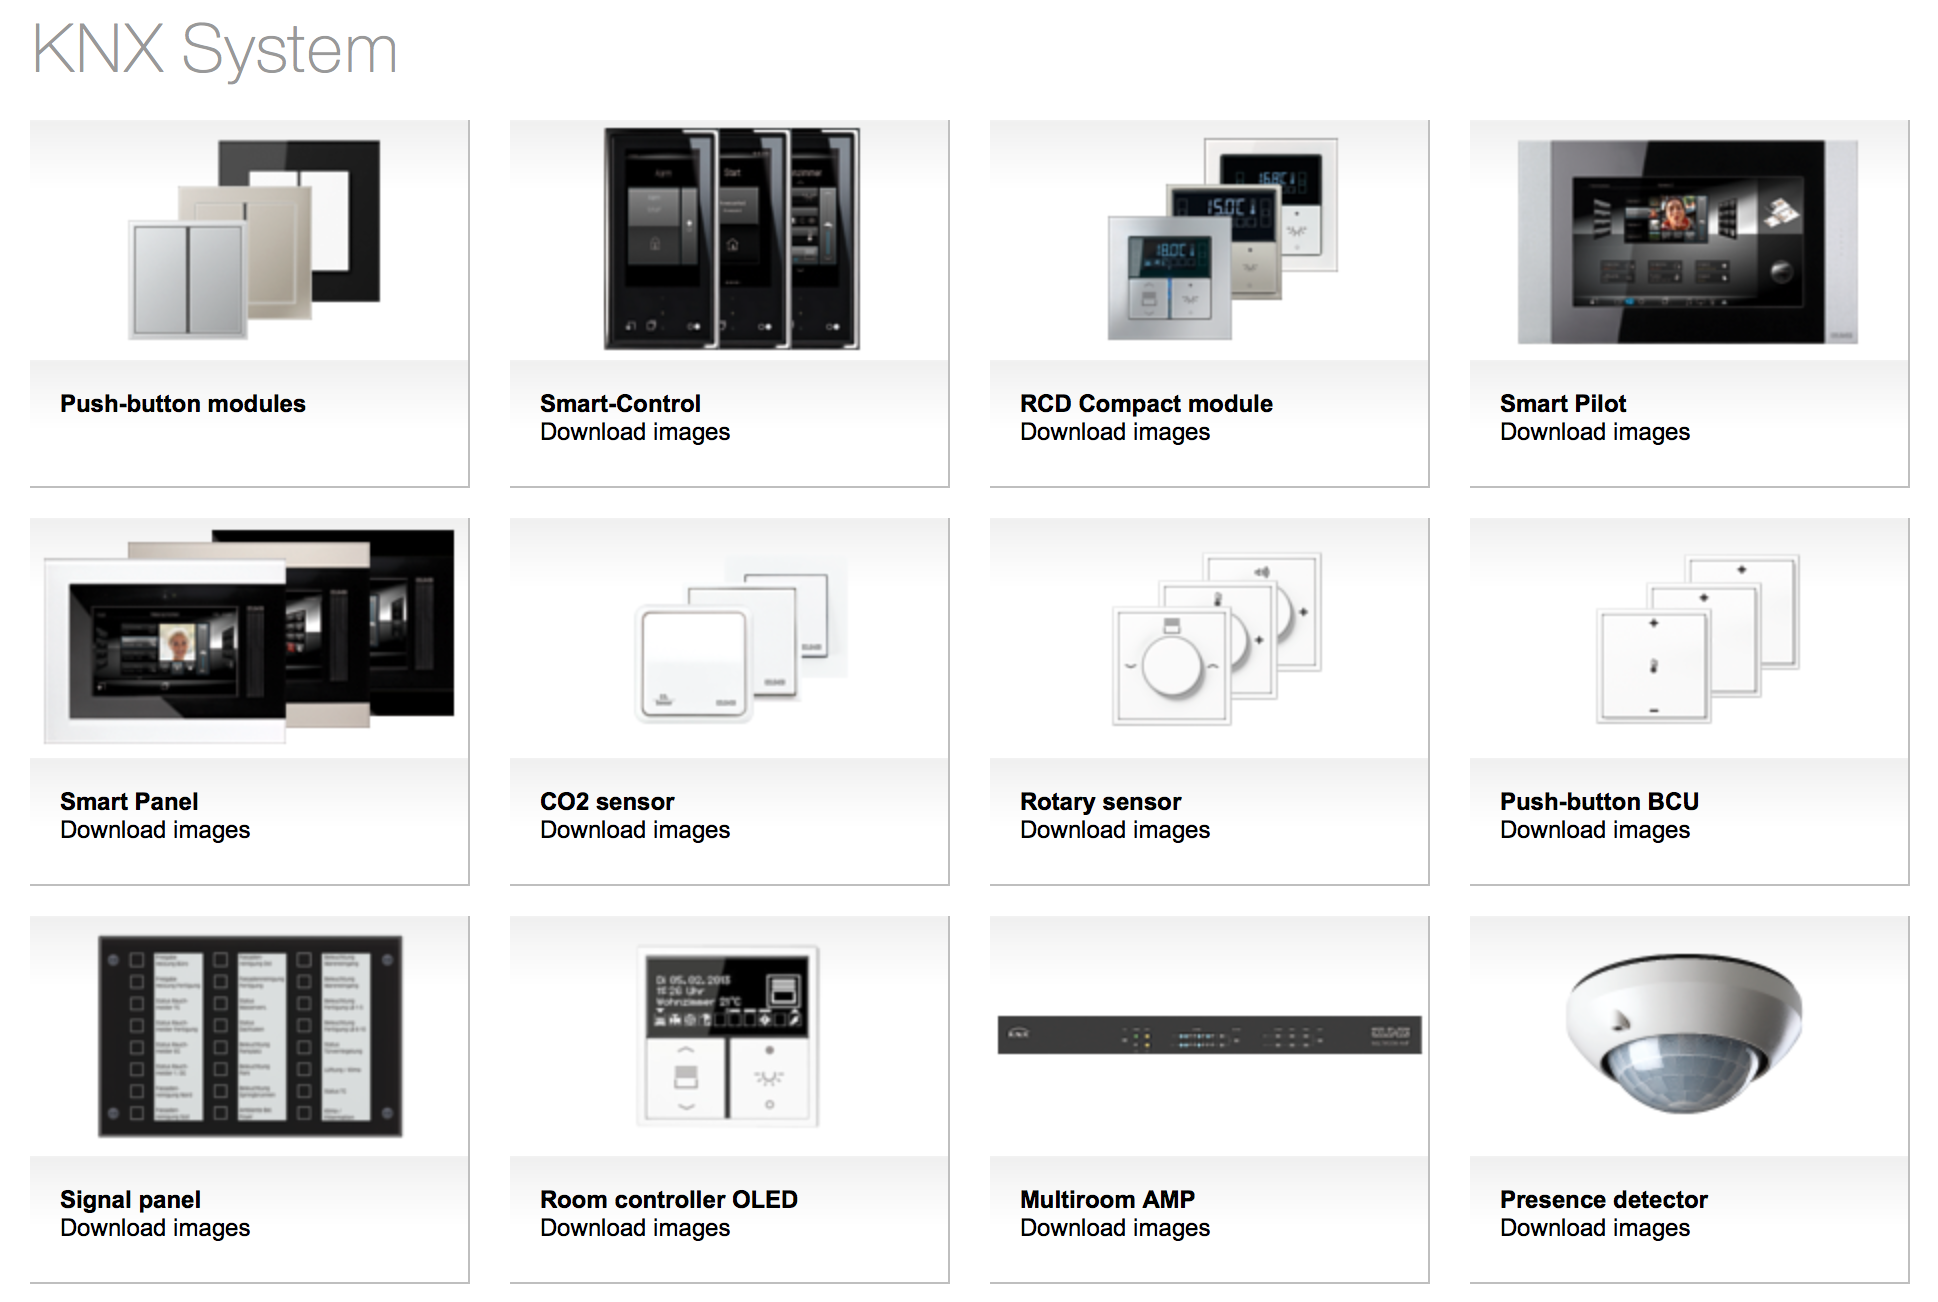 JUNG KNX System, Design Switches, Smart control, room controller ...